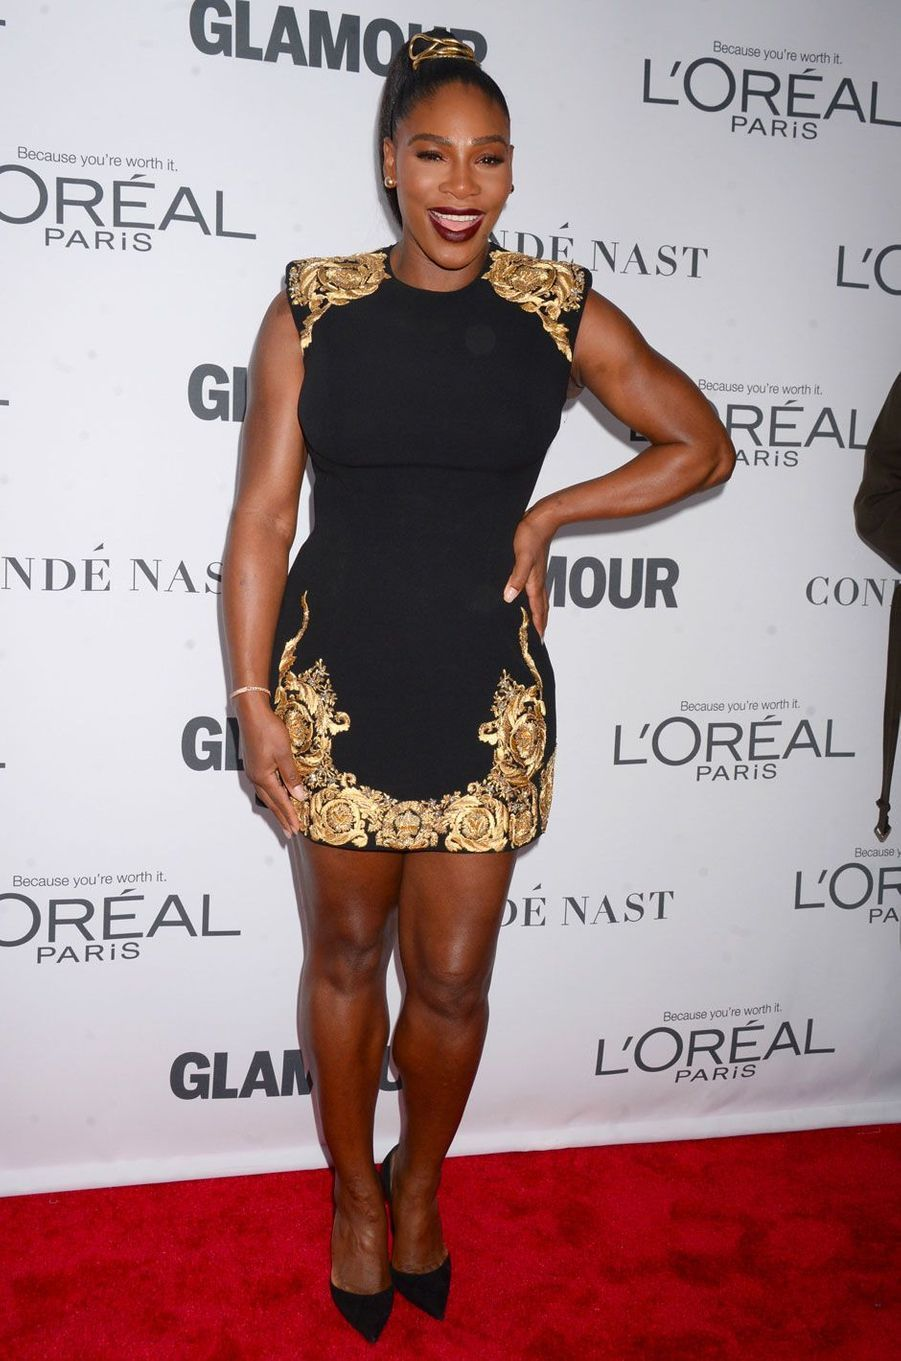 Serena Williams Glamour Women of the year 2017 à New York le 13 novembre 2017